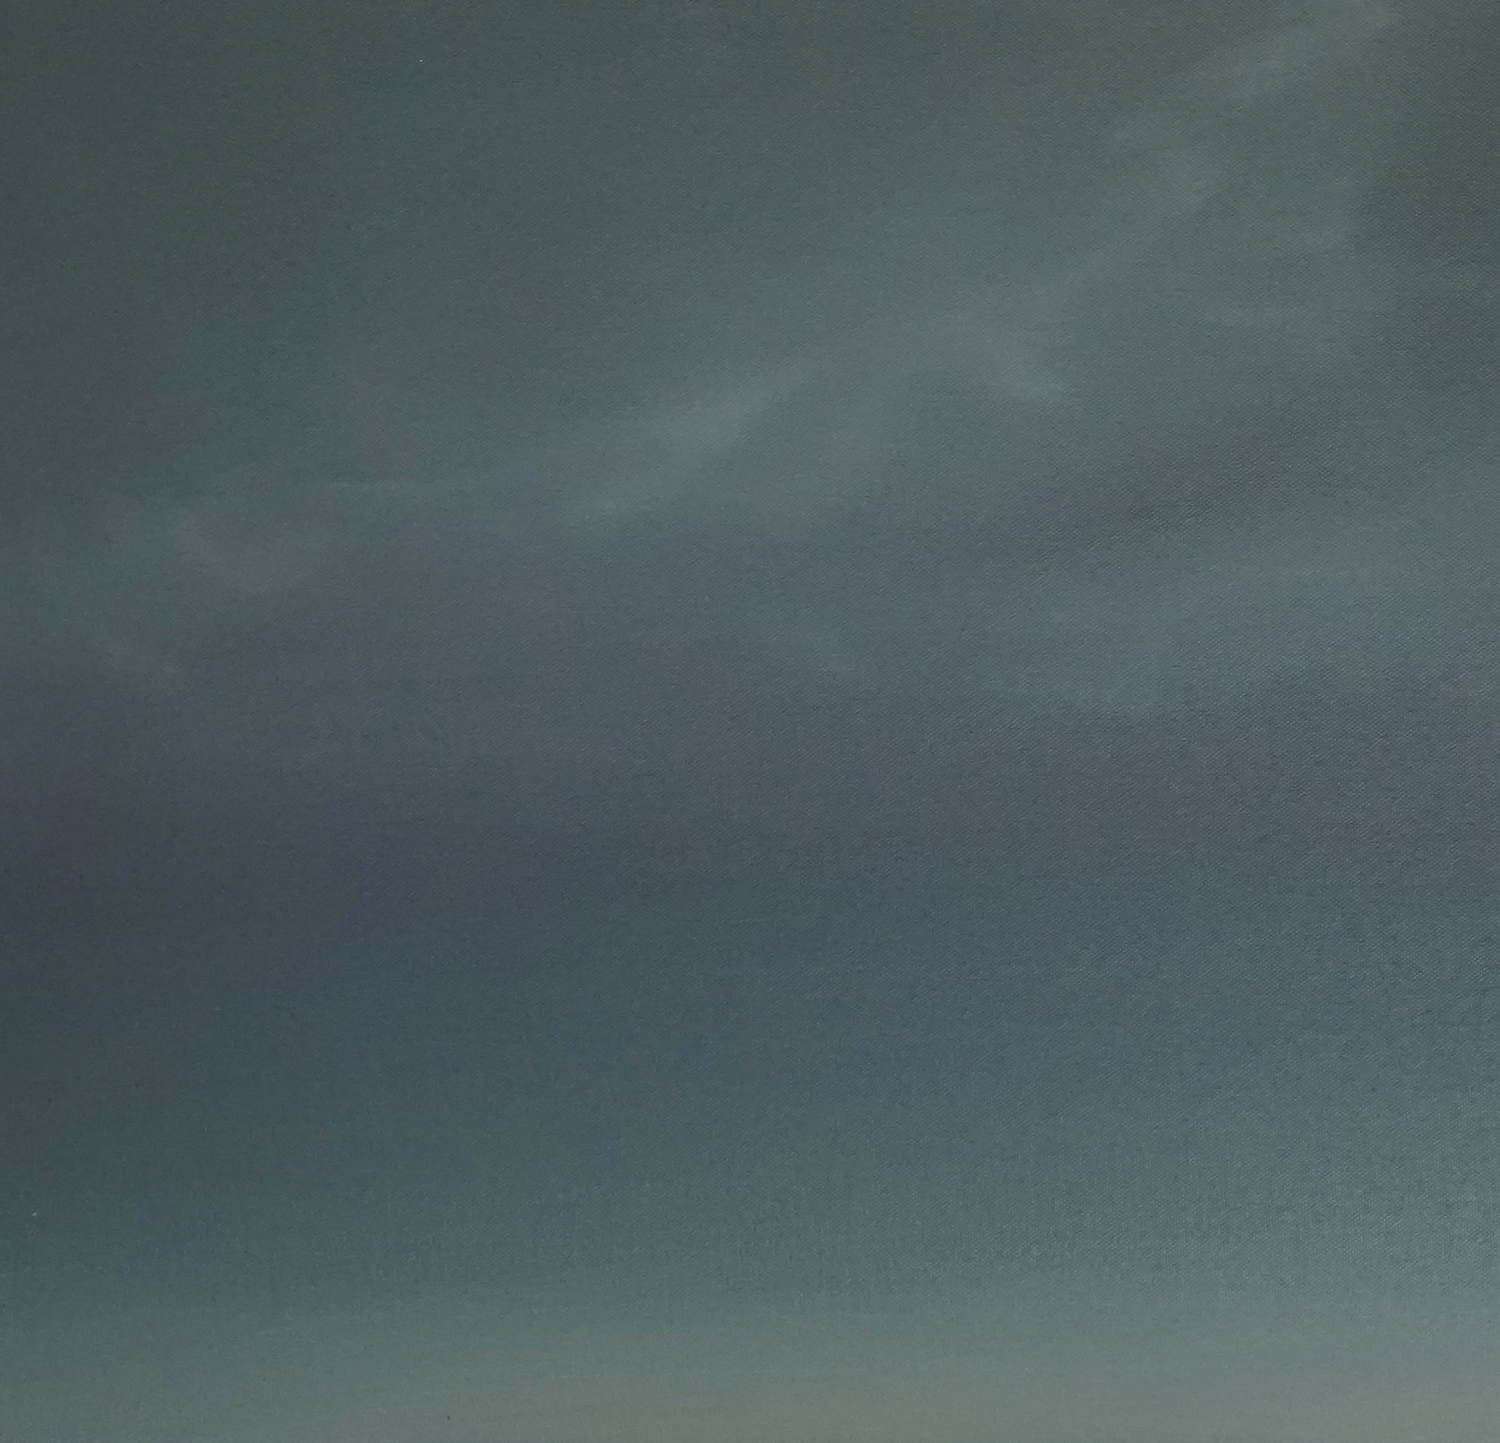 Painting a stormy background using lots of muted greys.